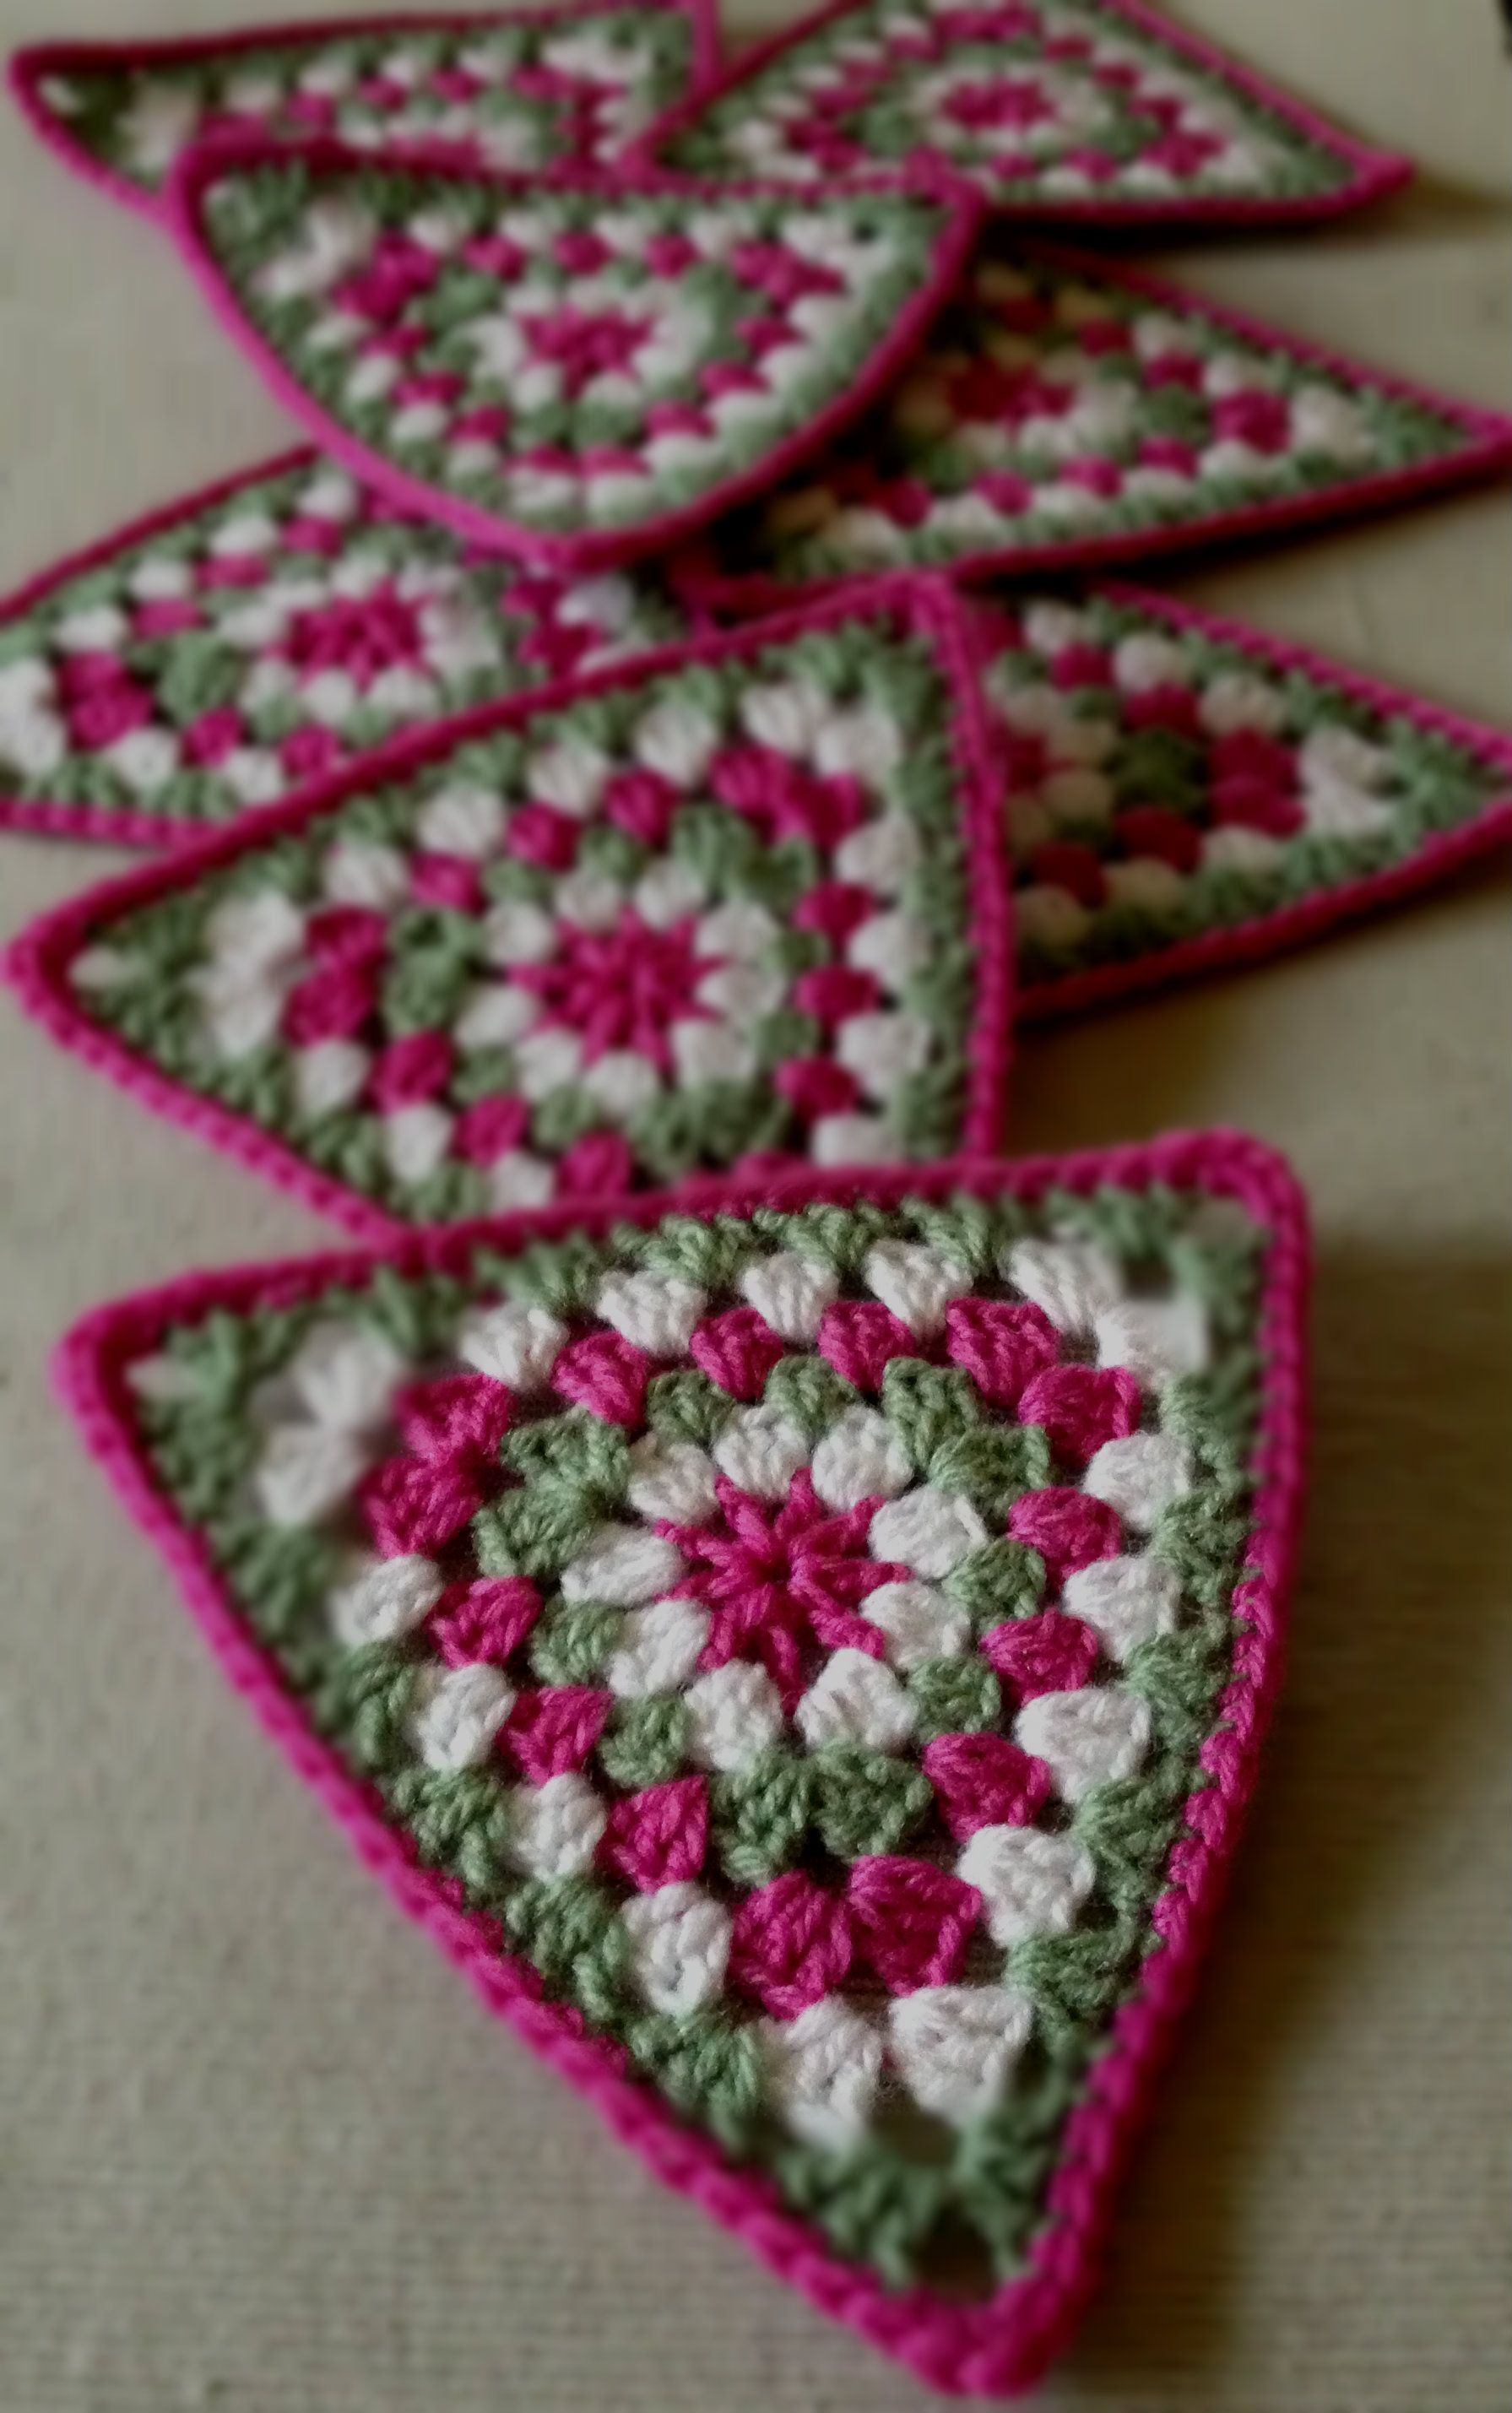 Crochet Triangle : Crochet granny triangle Crochet Pinterest